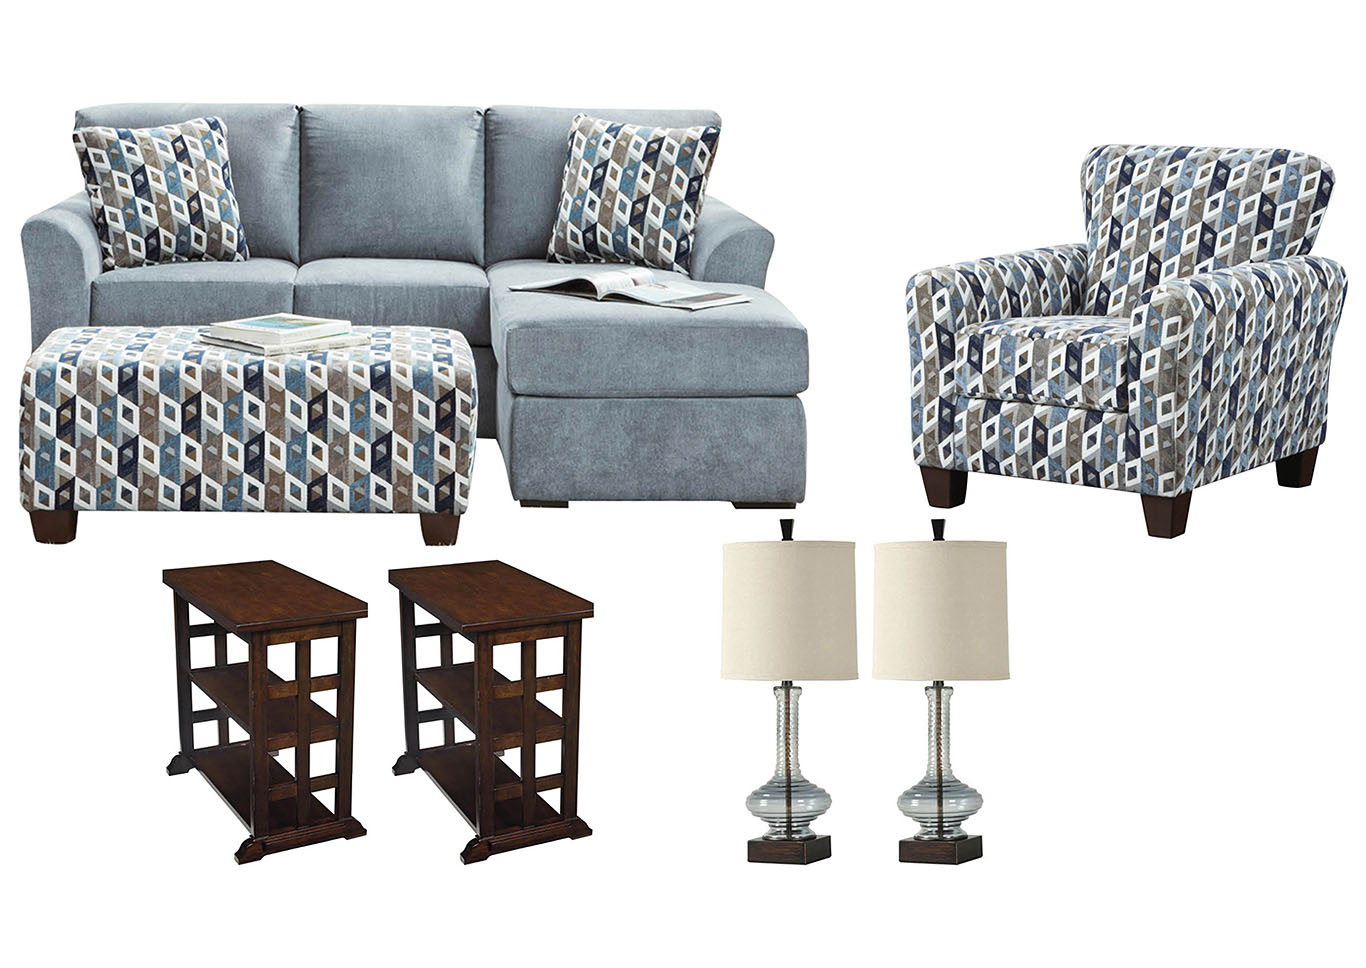 ANNA BLUE LIVING ROOM SET Ivan Smith